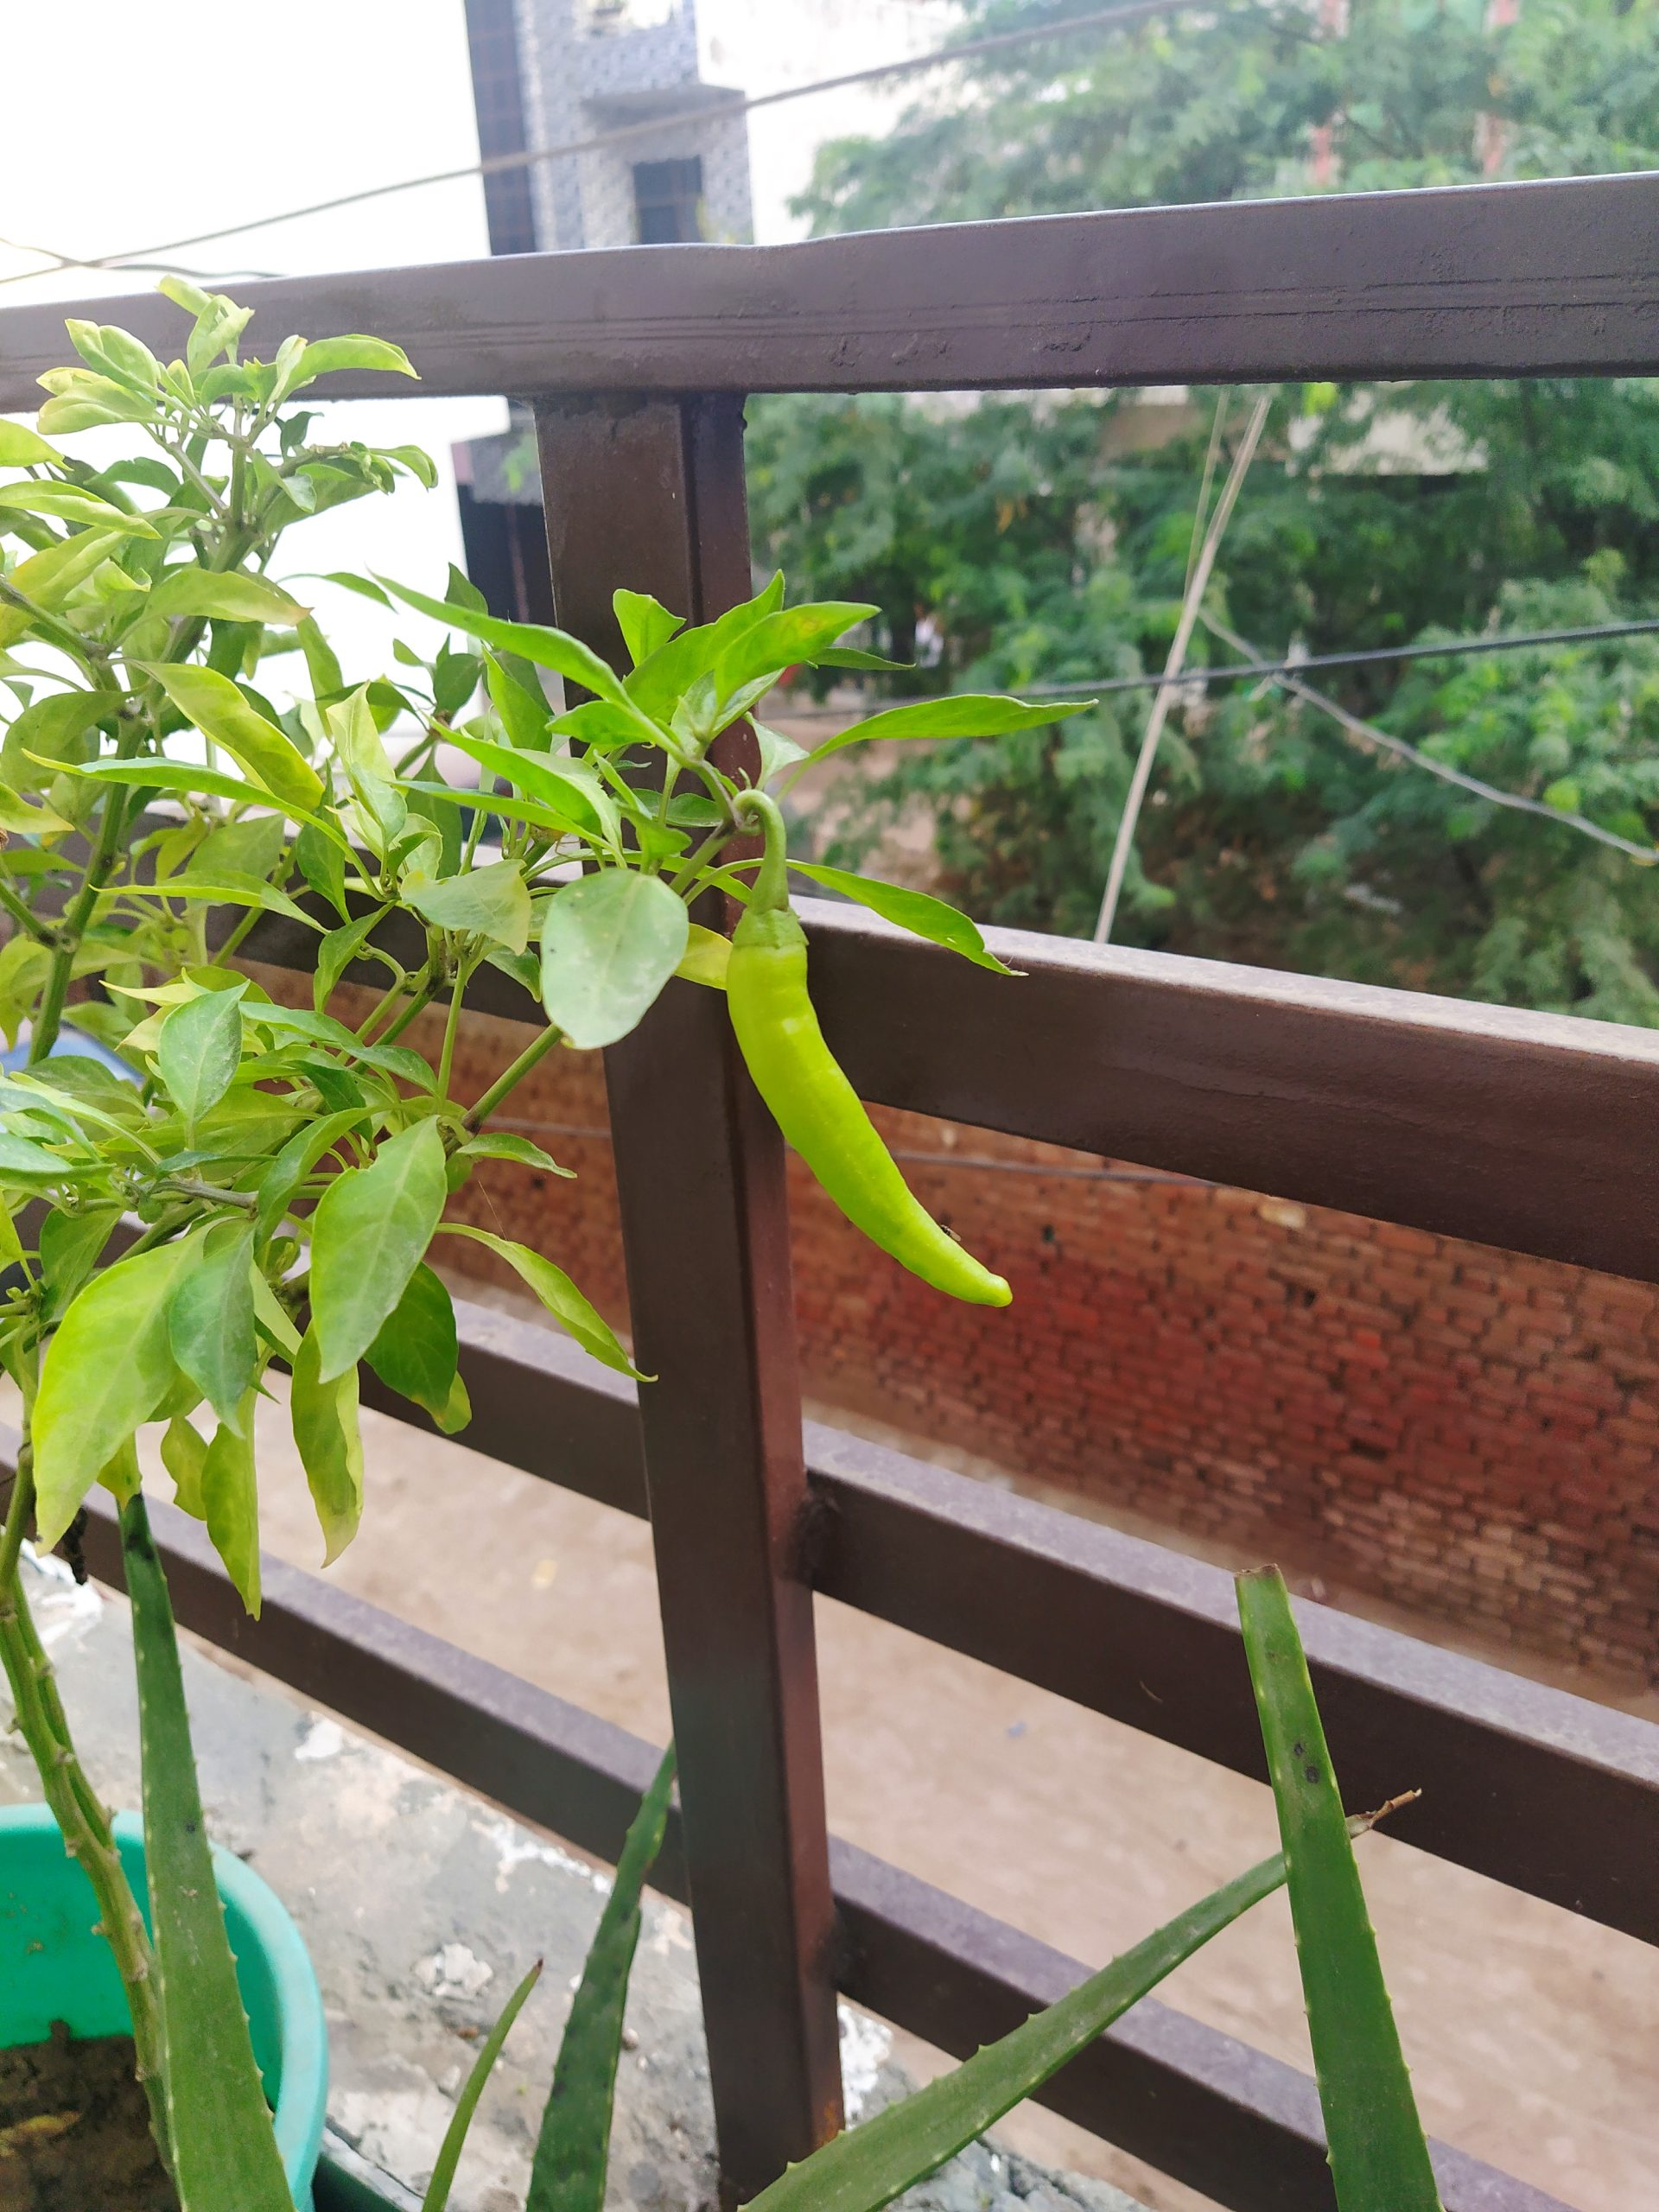 green chilly plant